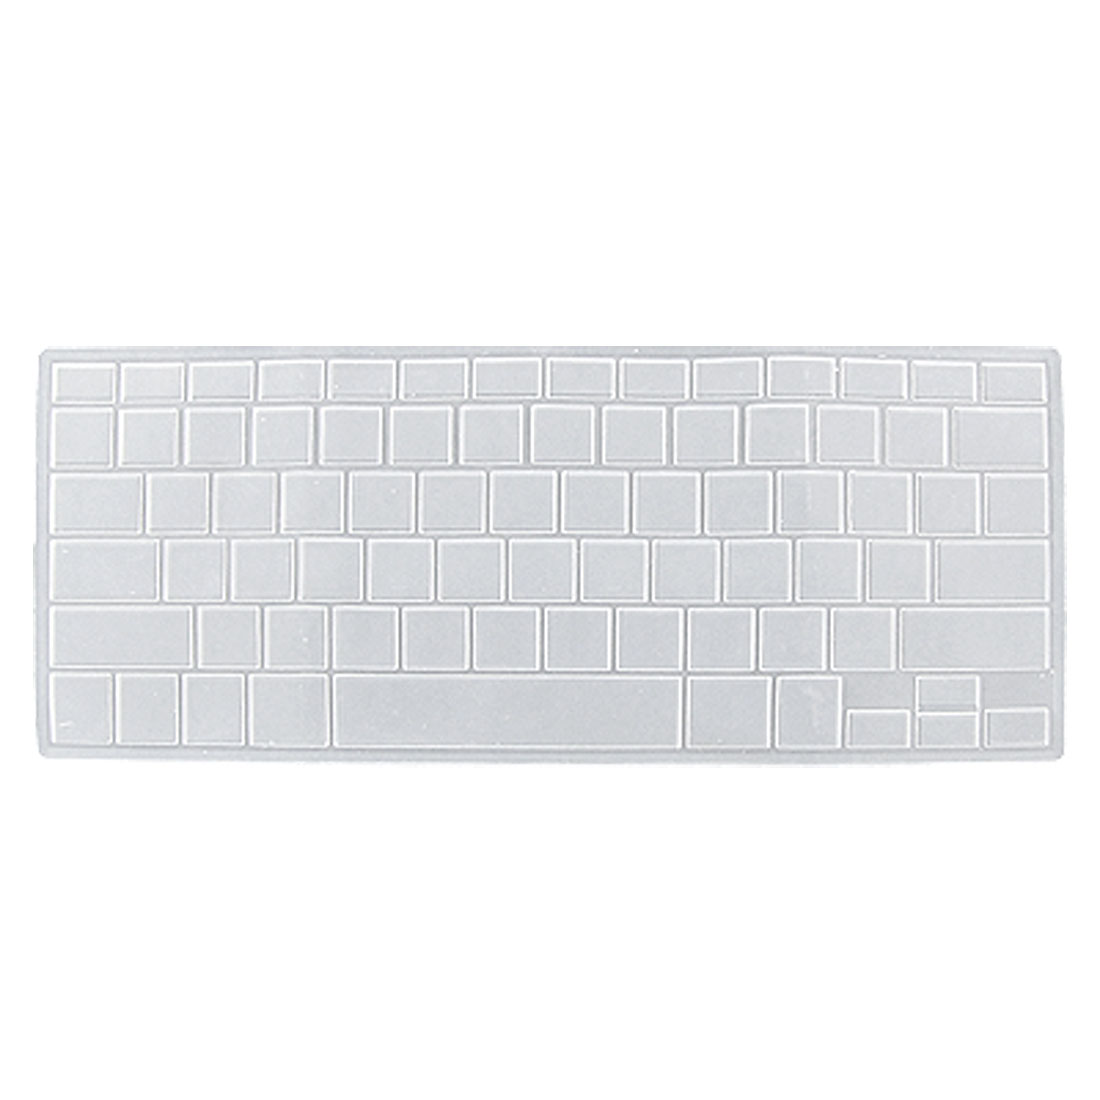 Clear Soft Silicone Keyboard Cover for Apple Macbook Pro 13.3""